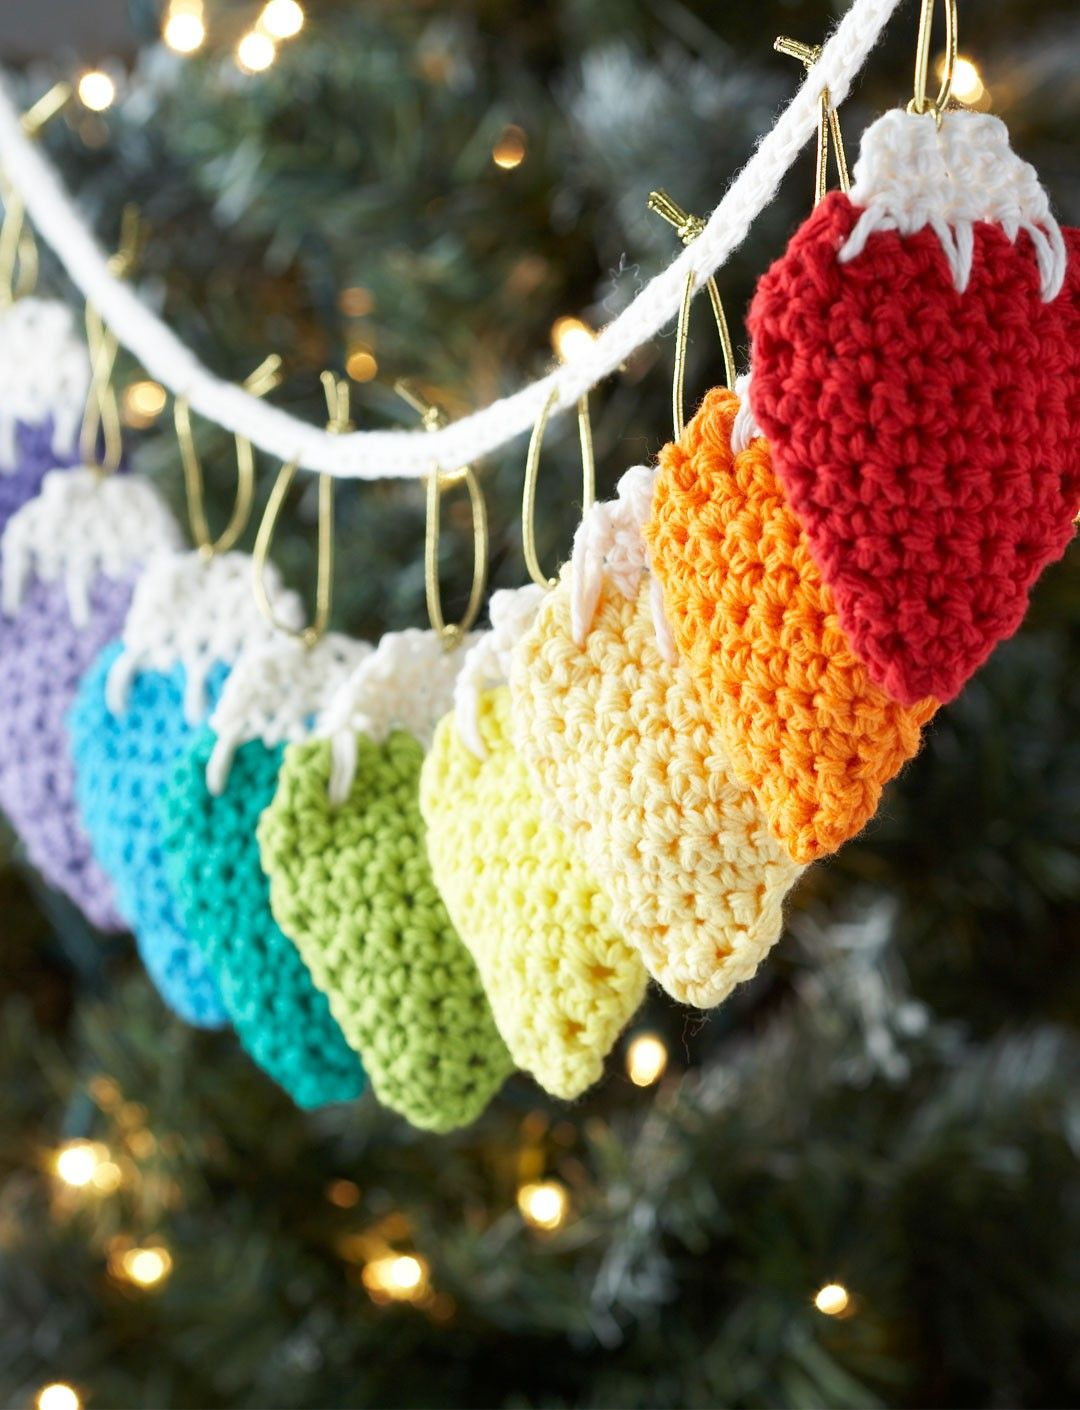 Crochet Decoration Patterns Crochet Holiday Lights Garland Or Individual Tree Decorations